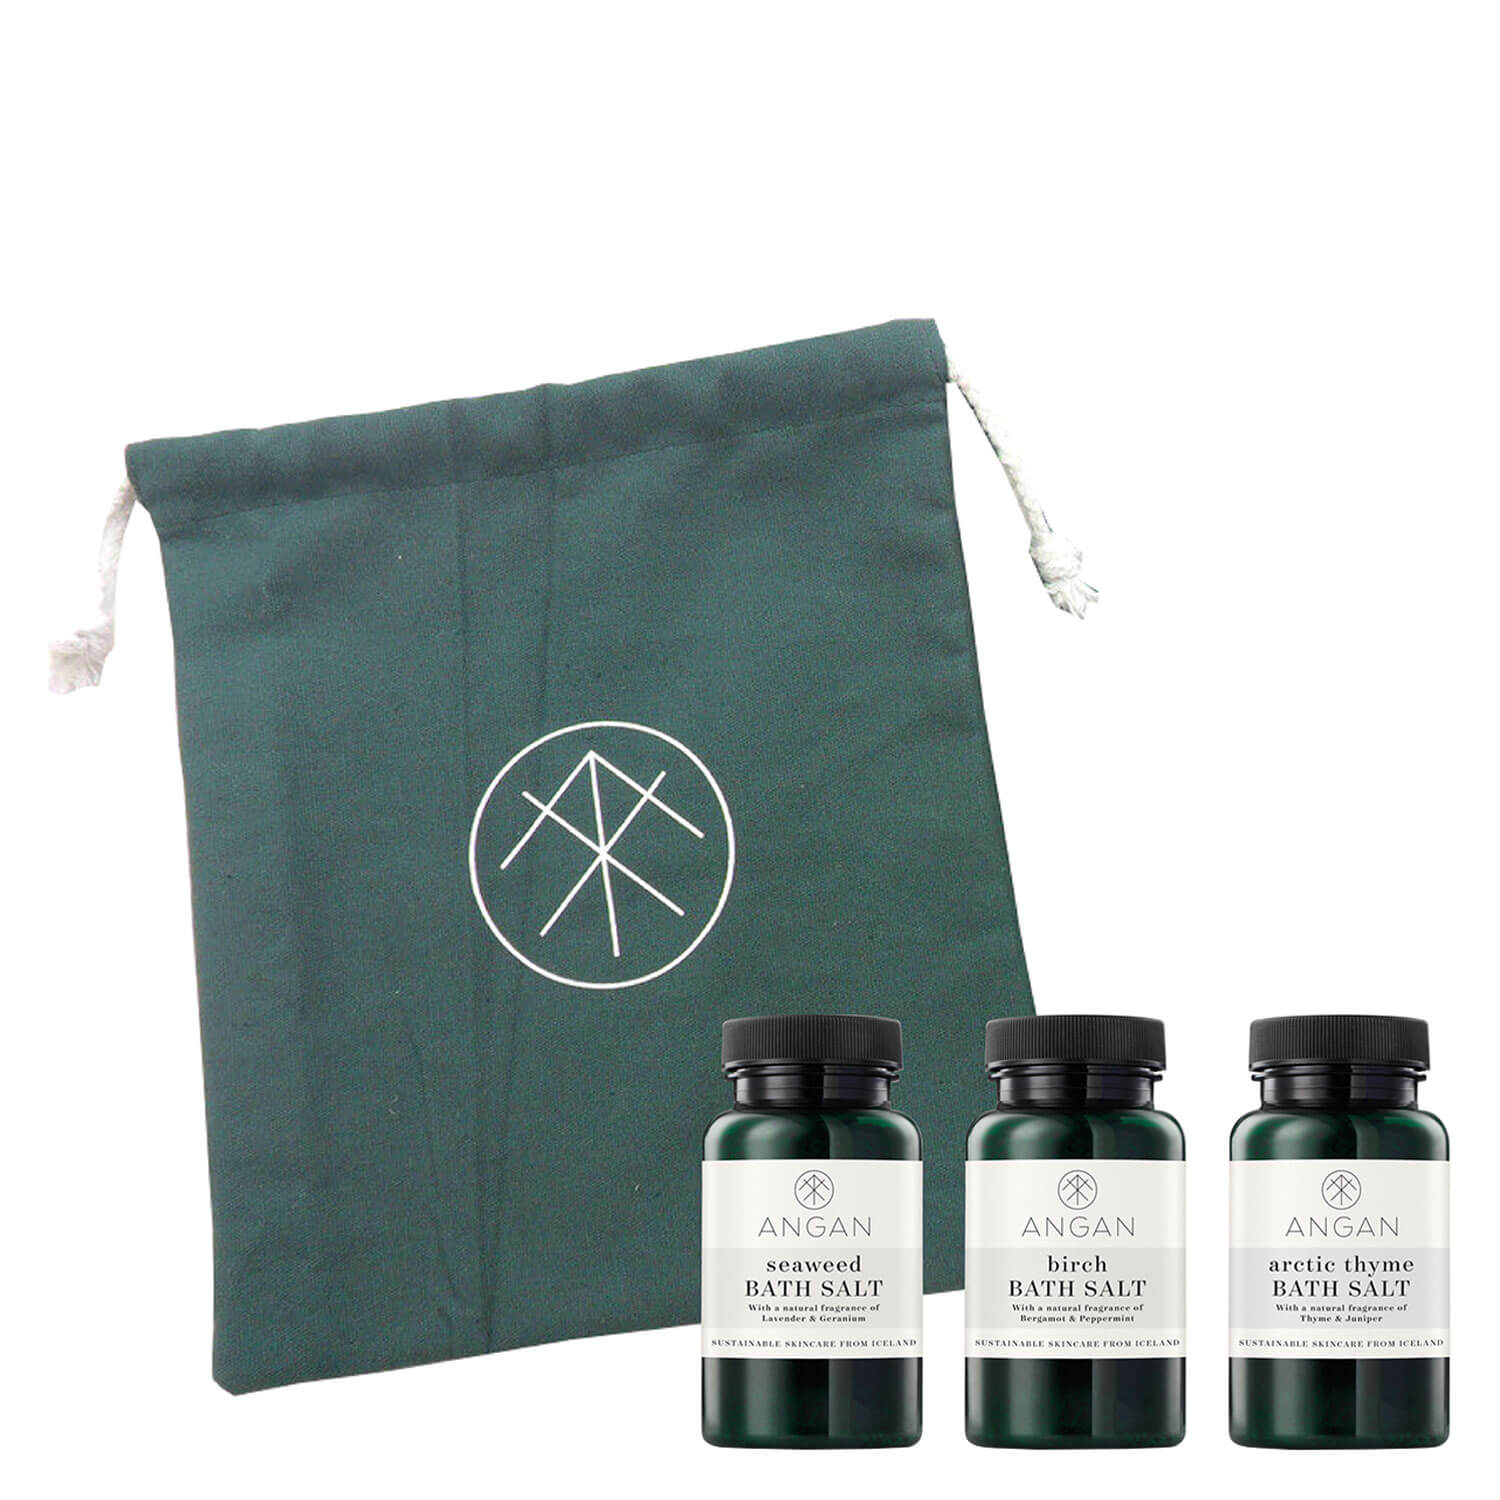 ANGAN - Bath Salts Set